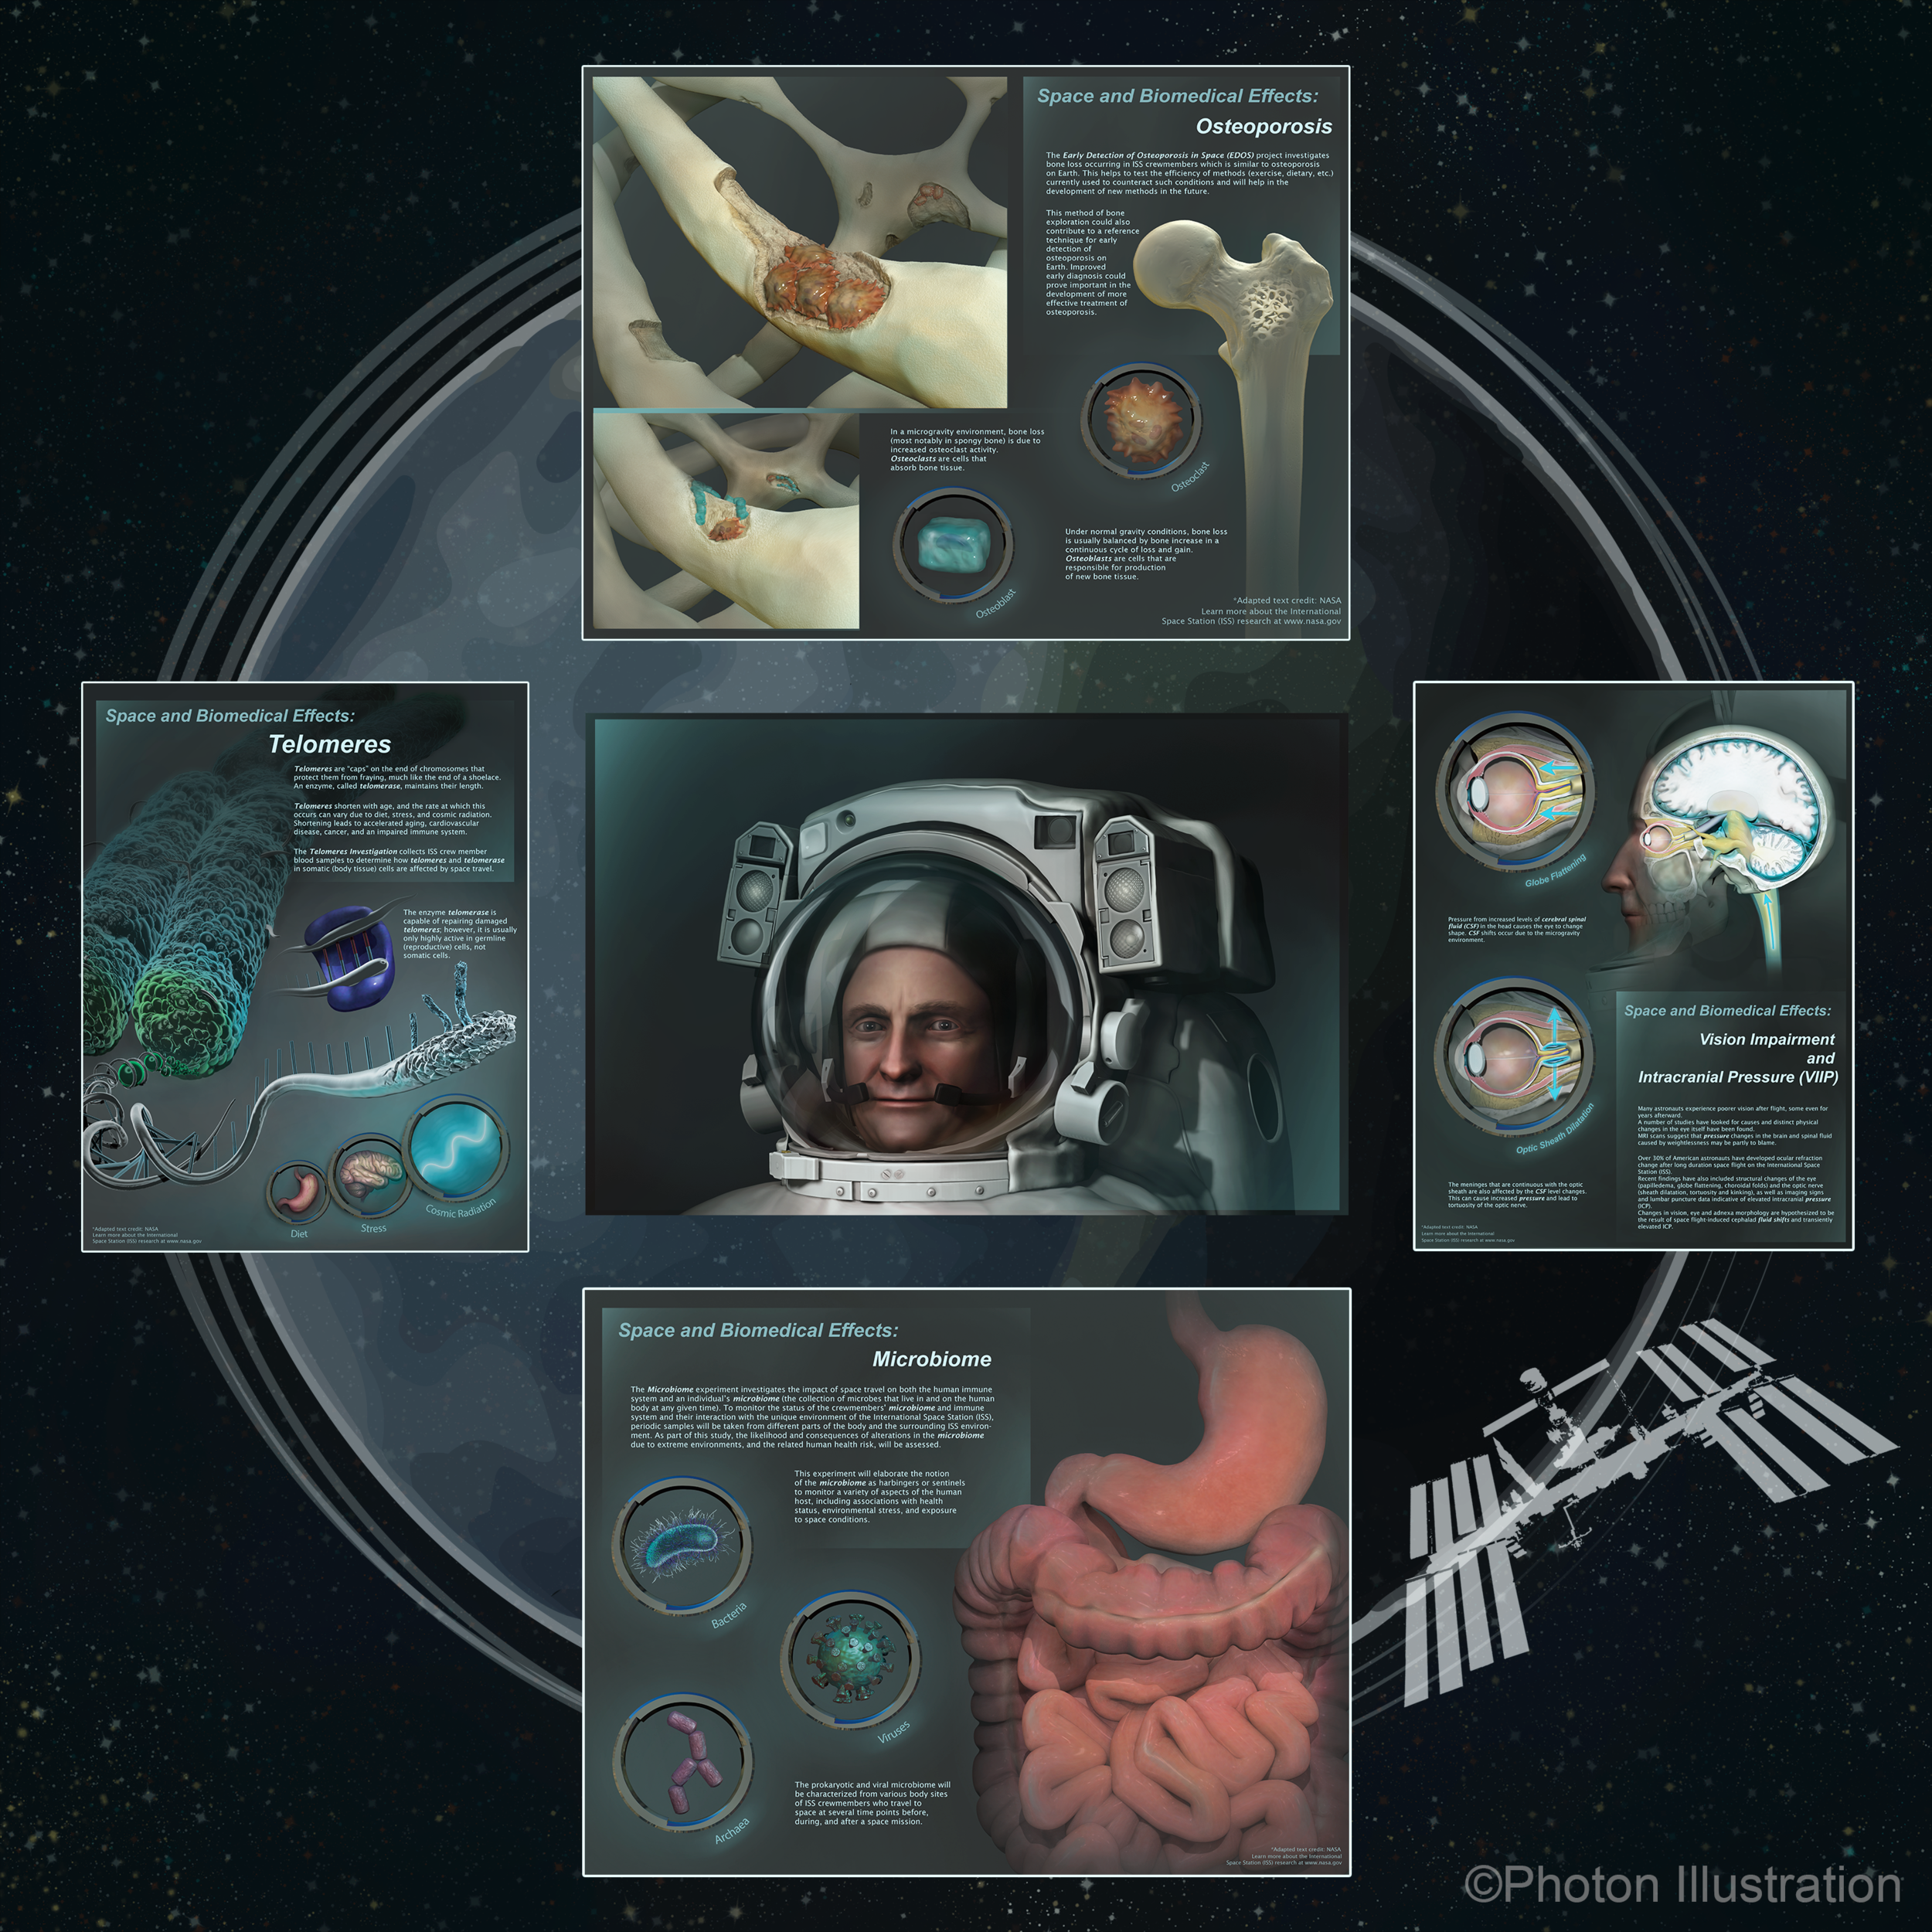 Space and Biomedical Effects